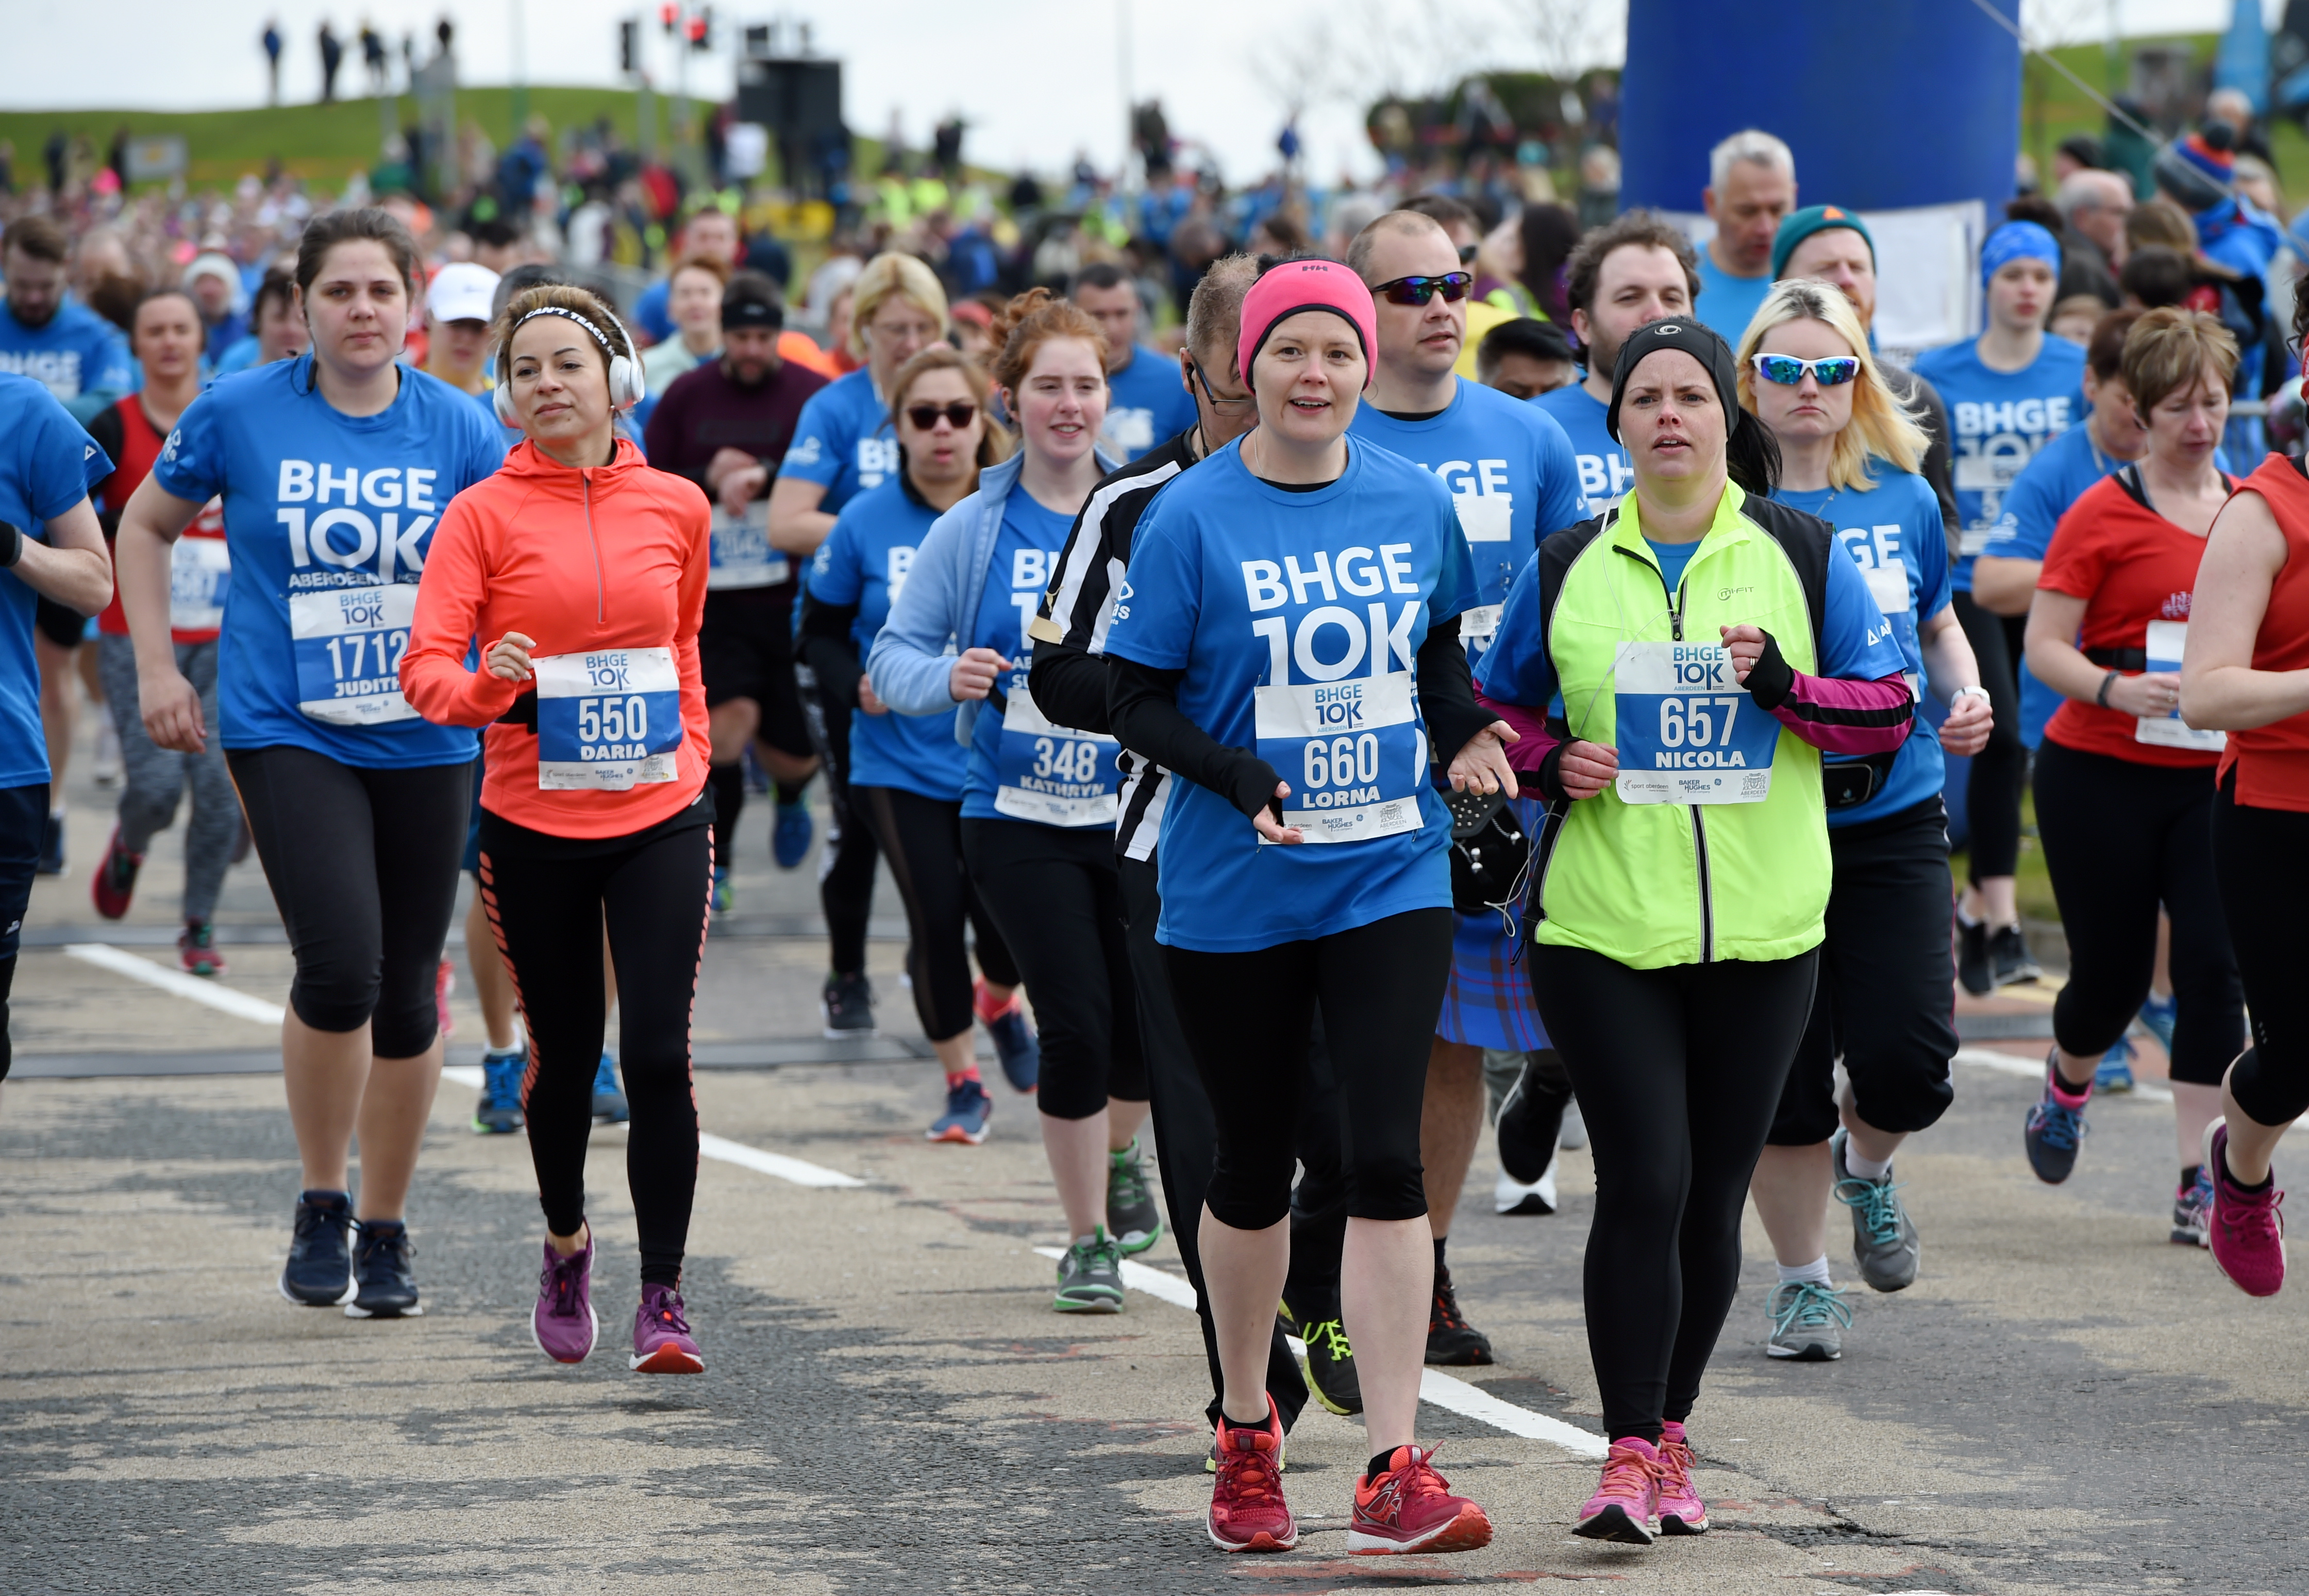 Competitors on the BHGE 10K. Photograph by Kenny Elrick